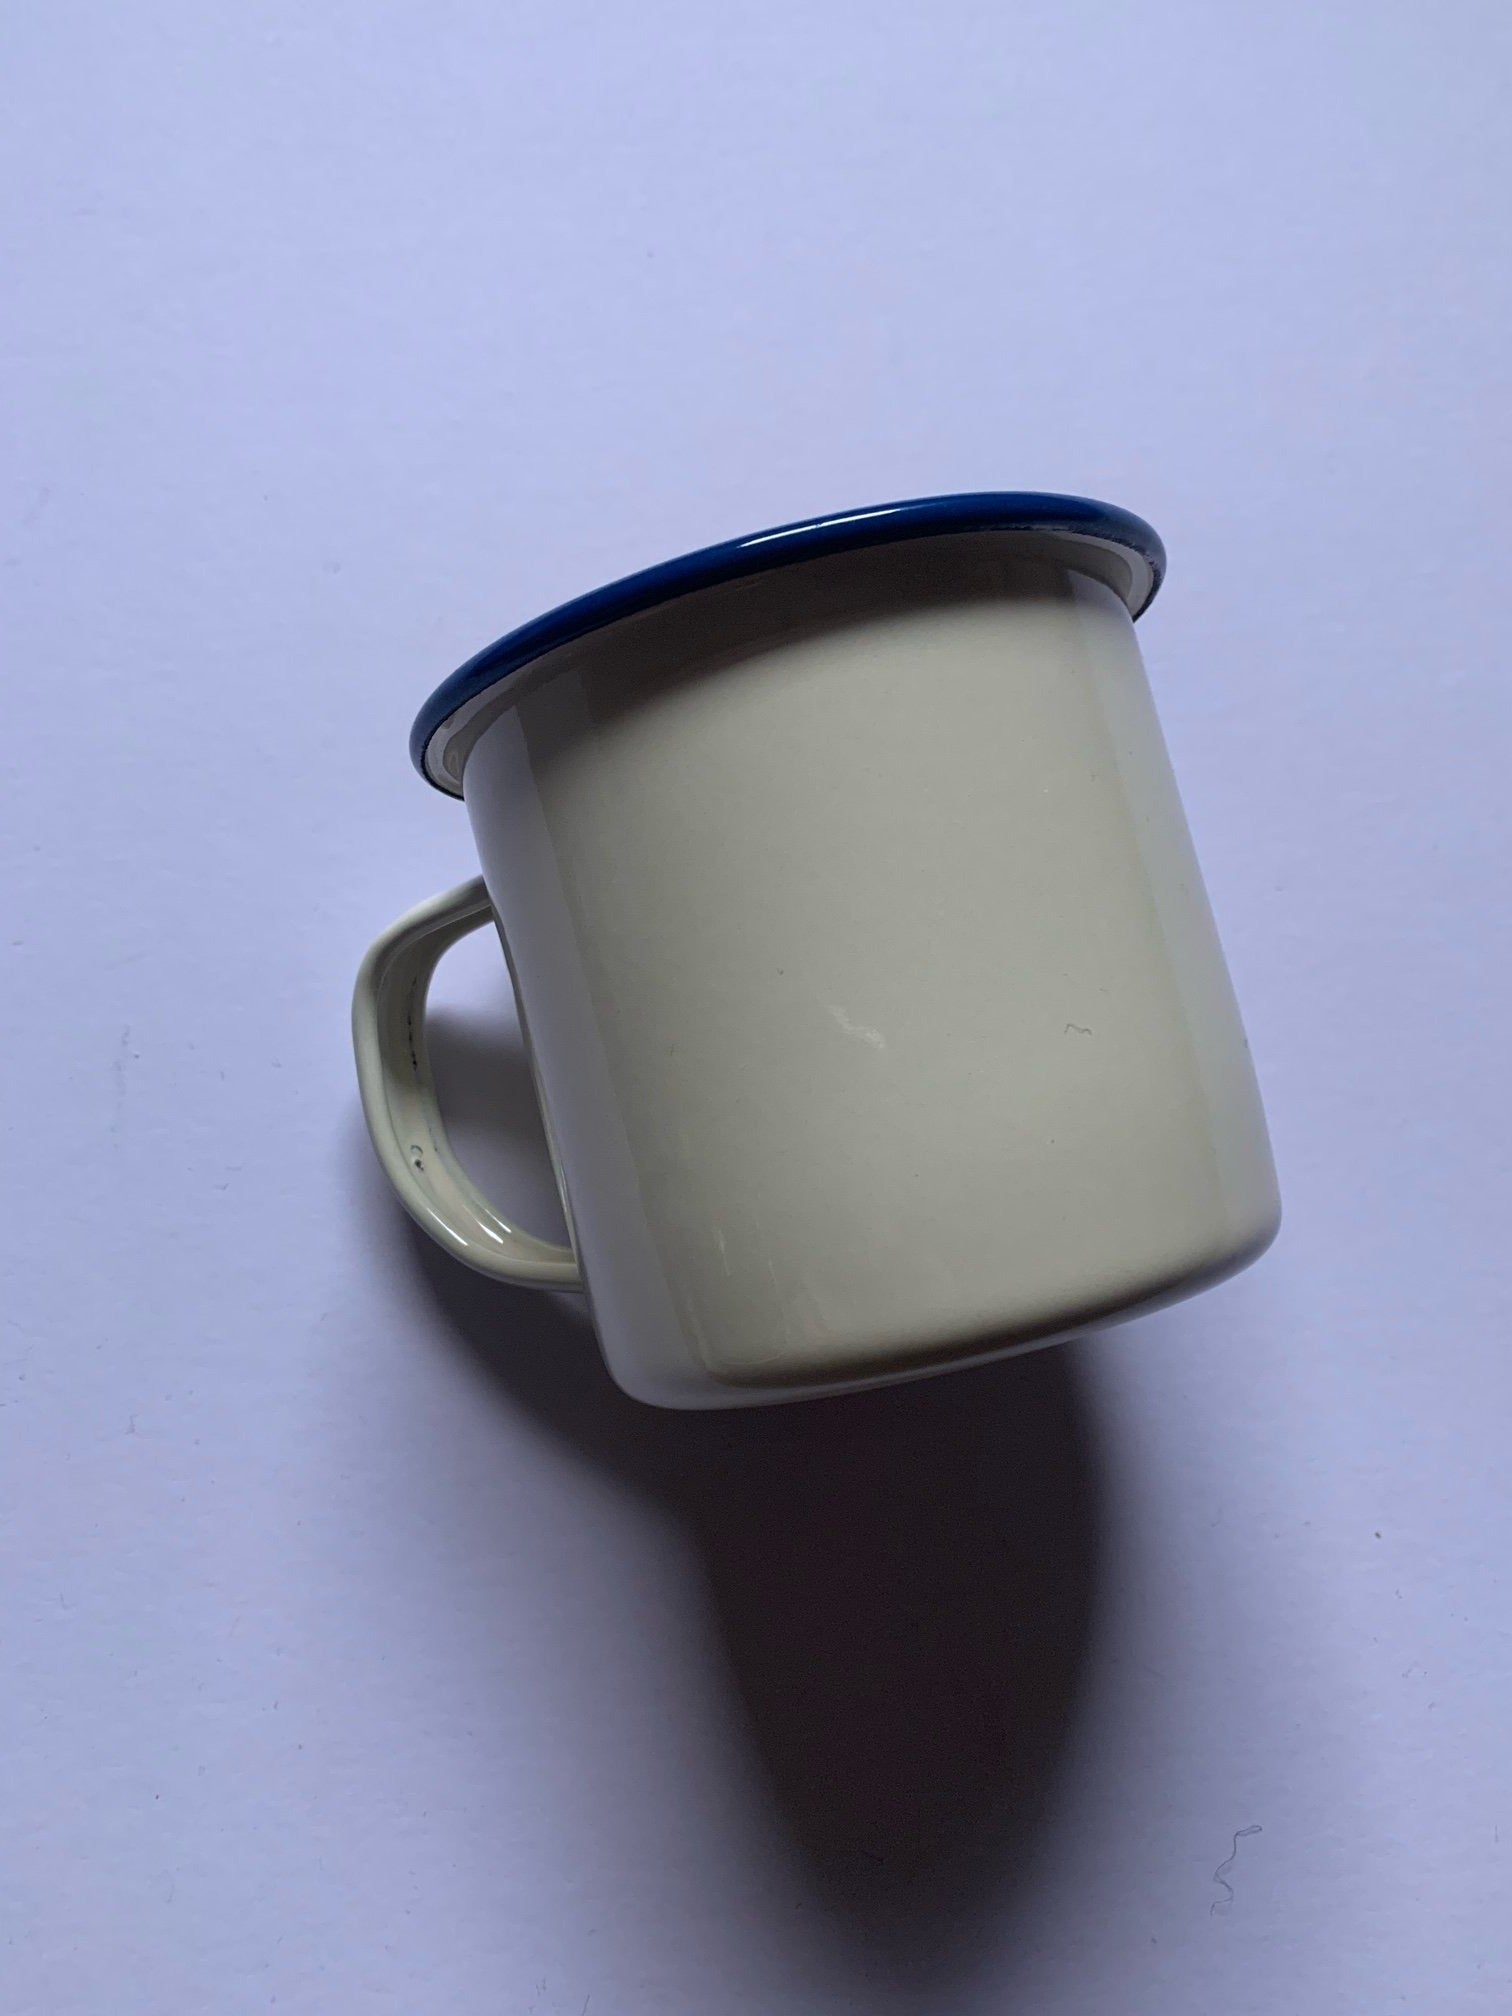 White enamelware mug which is durable, practical and travels well. Iconic, aesthetic and practical, it's the perfect cup for your morning brew, whether at home or out on the trail, and the look fits well into any homestead, making a great gift for those newly renting or home-owning.